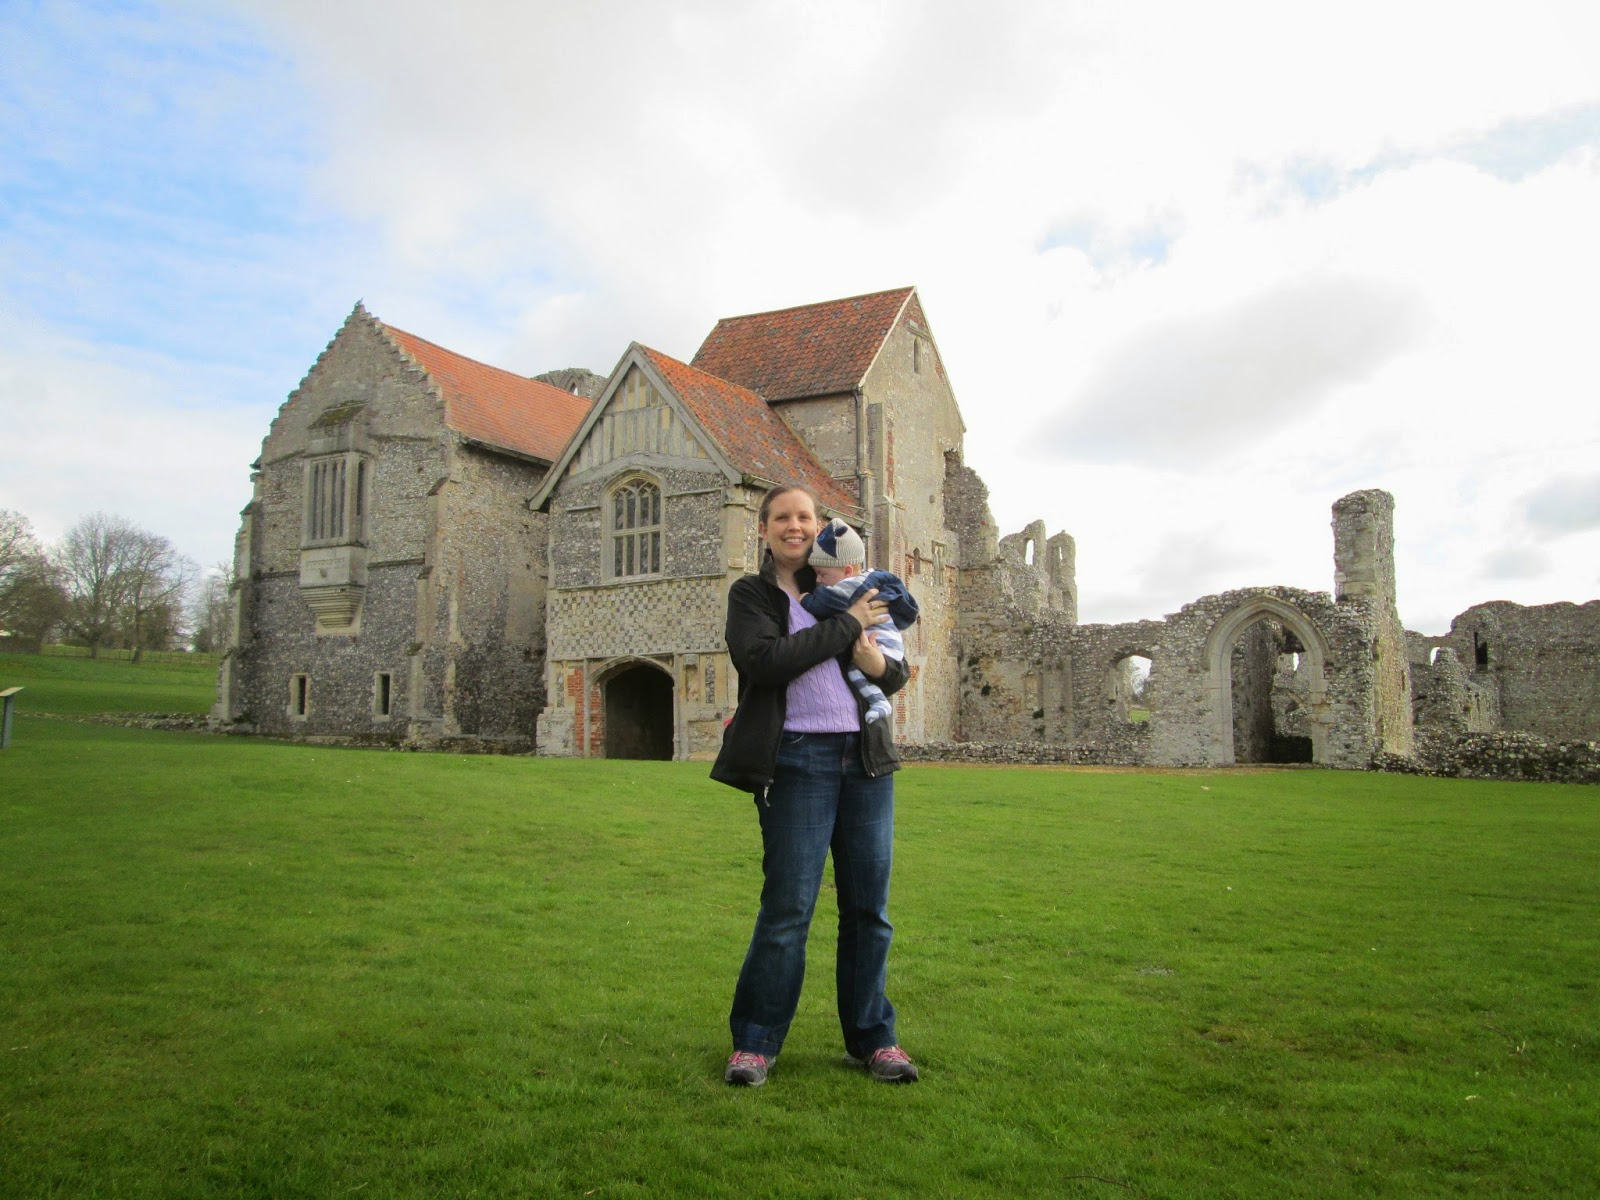 Castle Acre Priory Norfolk